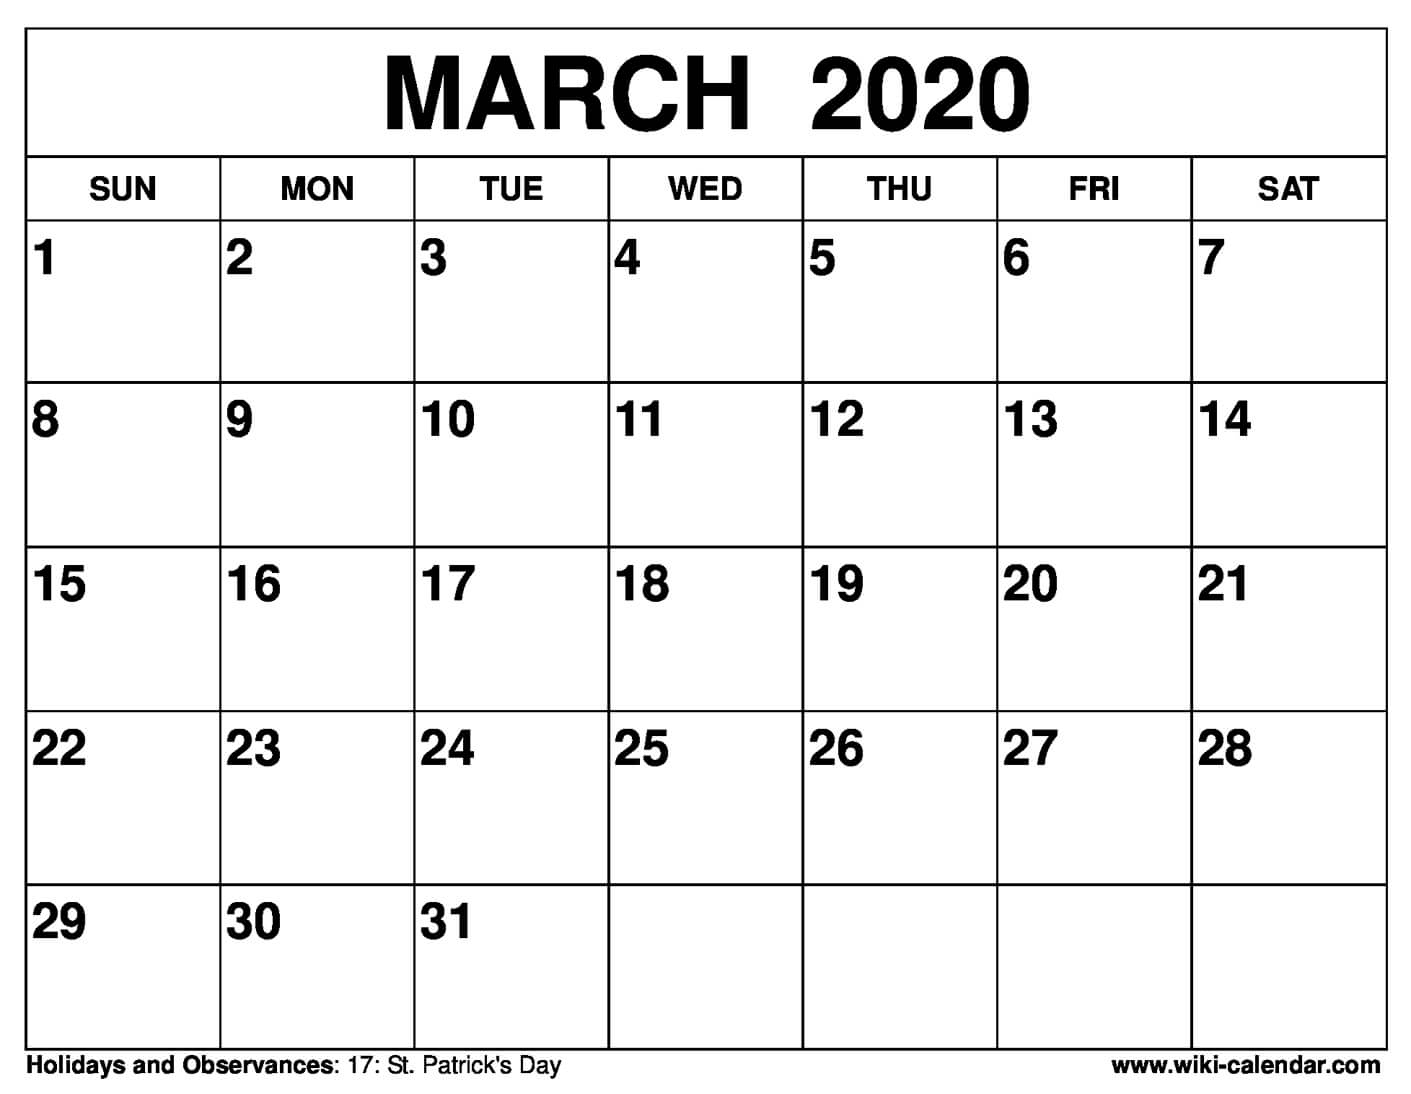 Free Calendar March 2020  Yatay.horizonconsulting.co regarding Calendars Michel Zbinden 2020